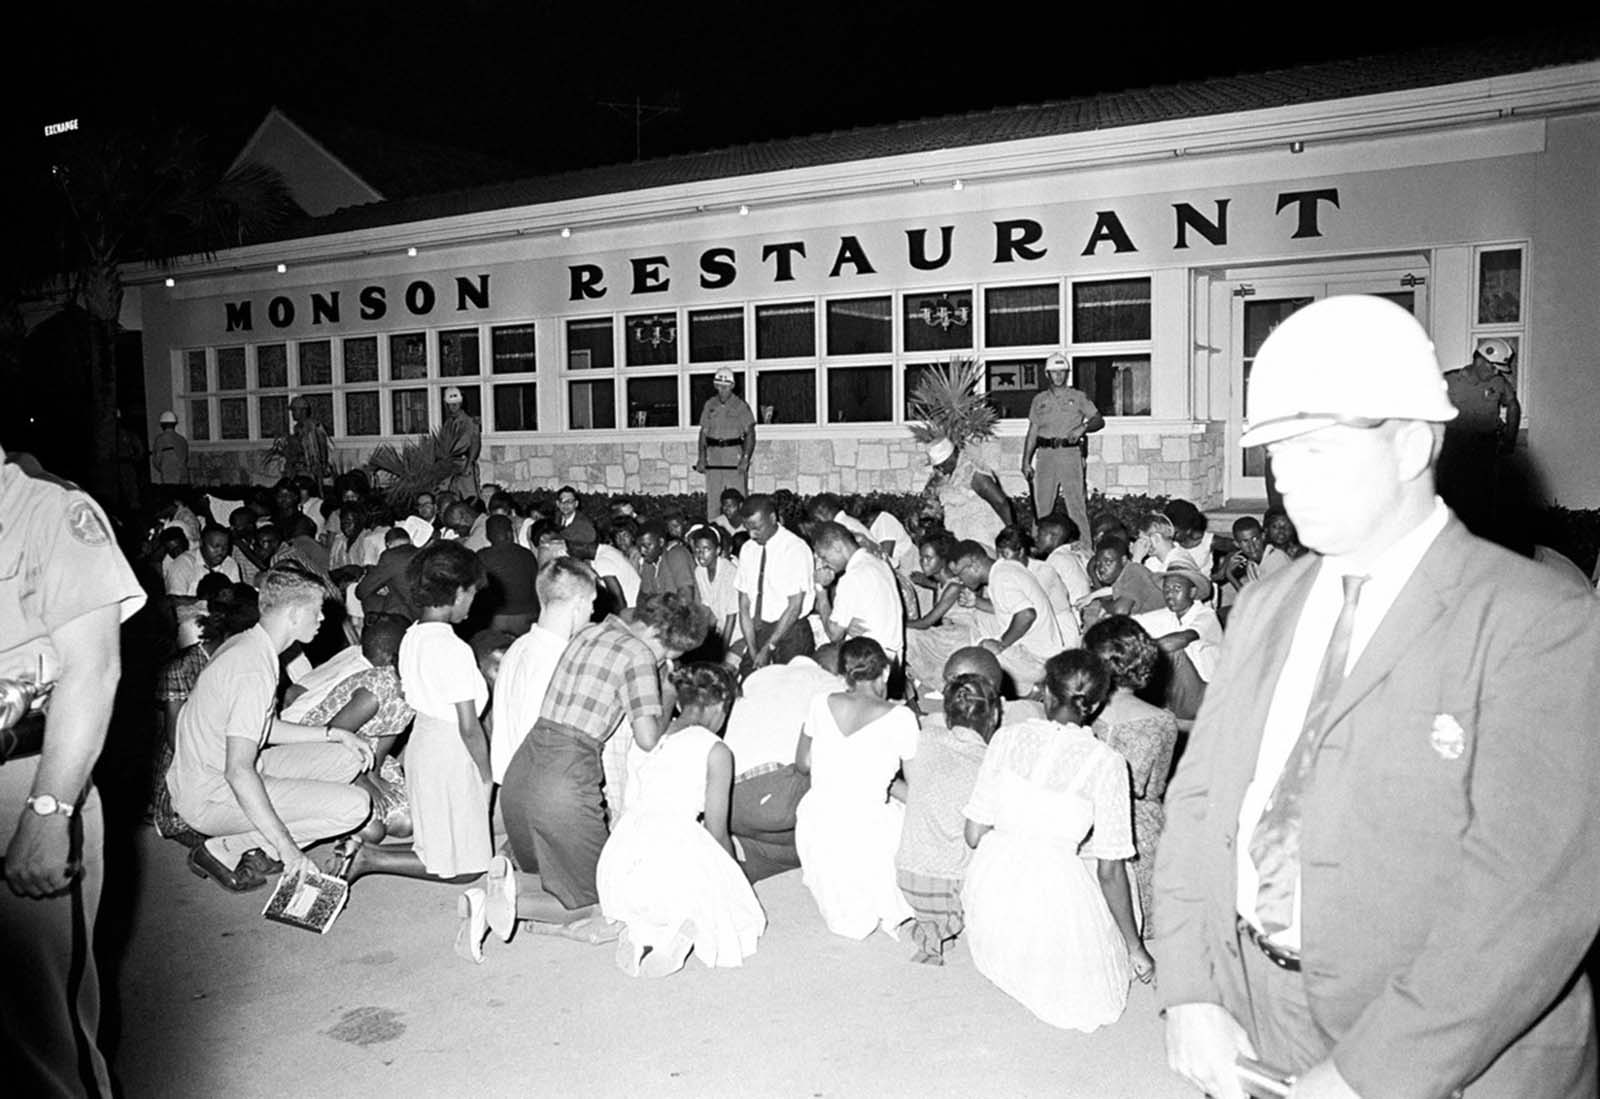 Integration demonstrators, after a long march through the white business and residential section of St. Augustine, Florida, held prayer sessions at the Monson Motor Lodge Restaurant on June 18, 1964, The restaurant has been the target of many sit-in attempts by the Southern Christian Leadership Conference.